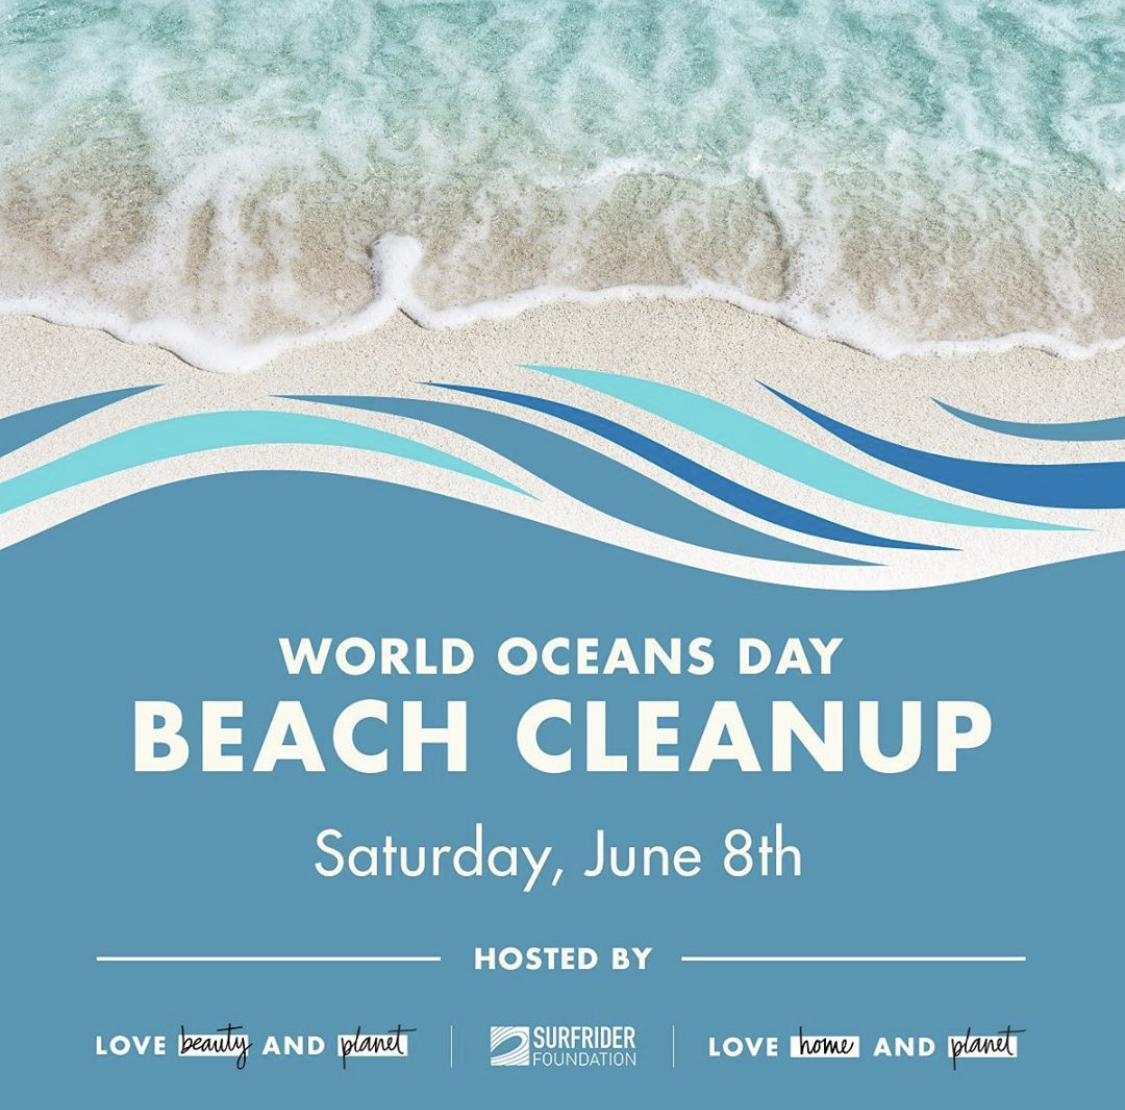 Worlds Ocean Day Beach Cleanup June 8th!